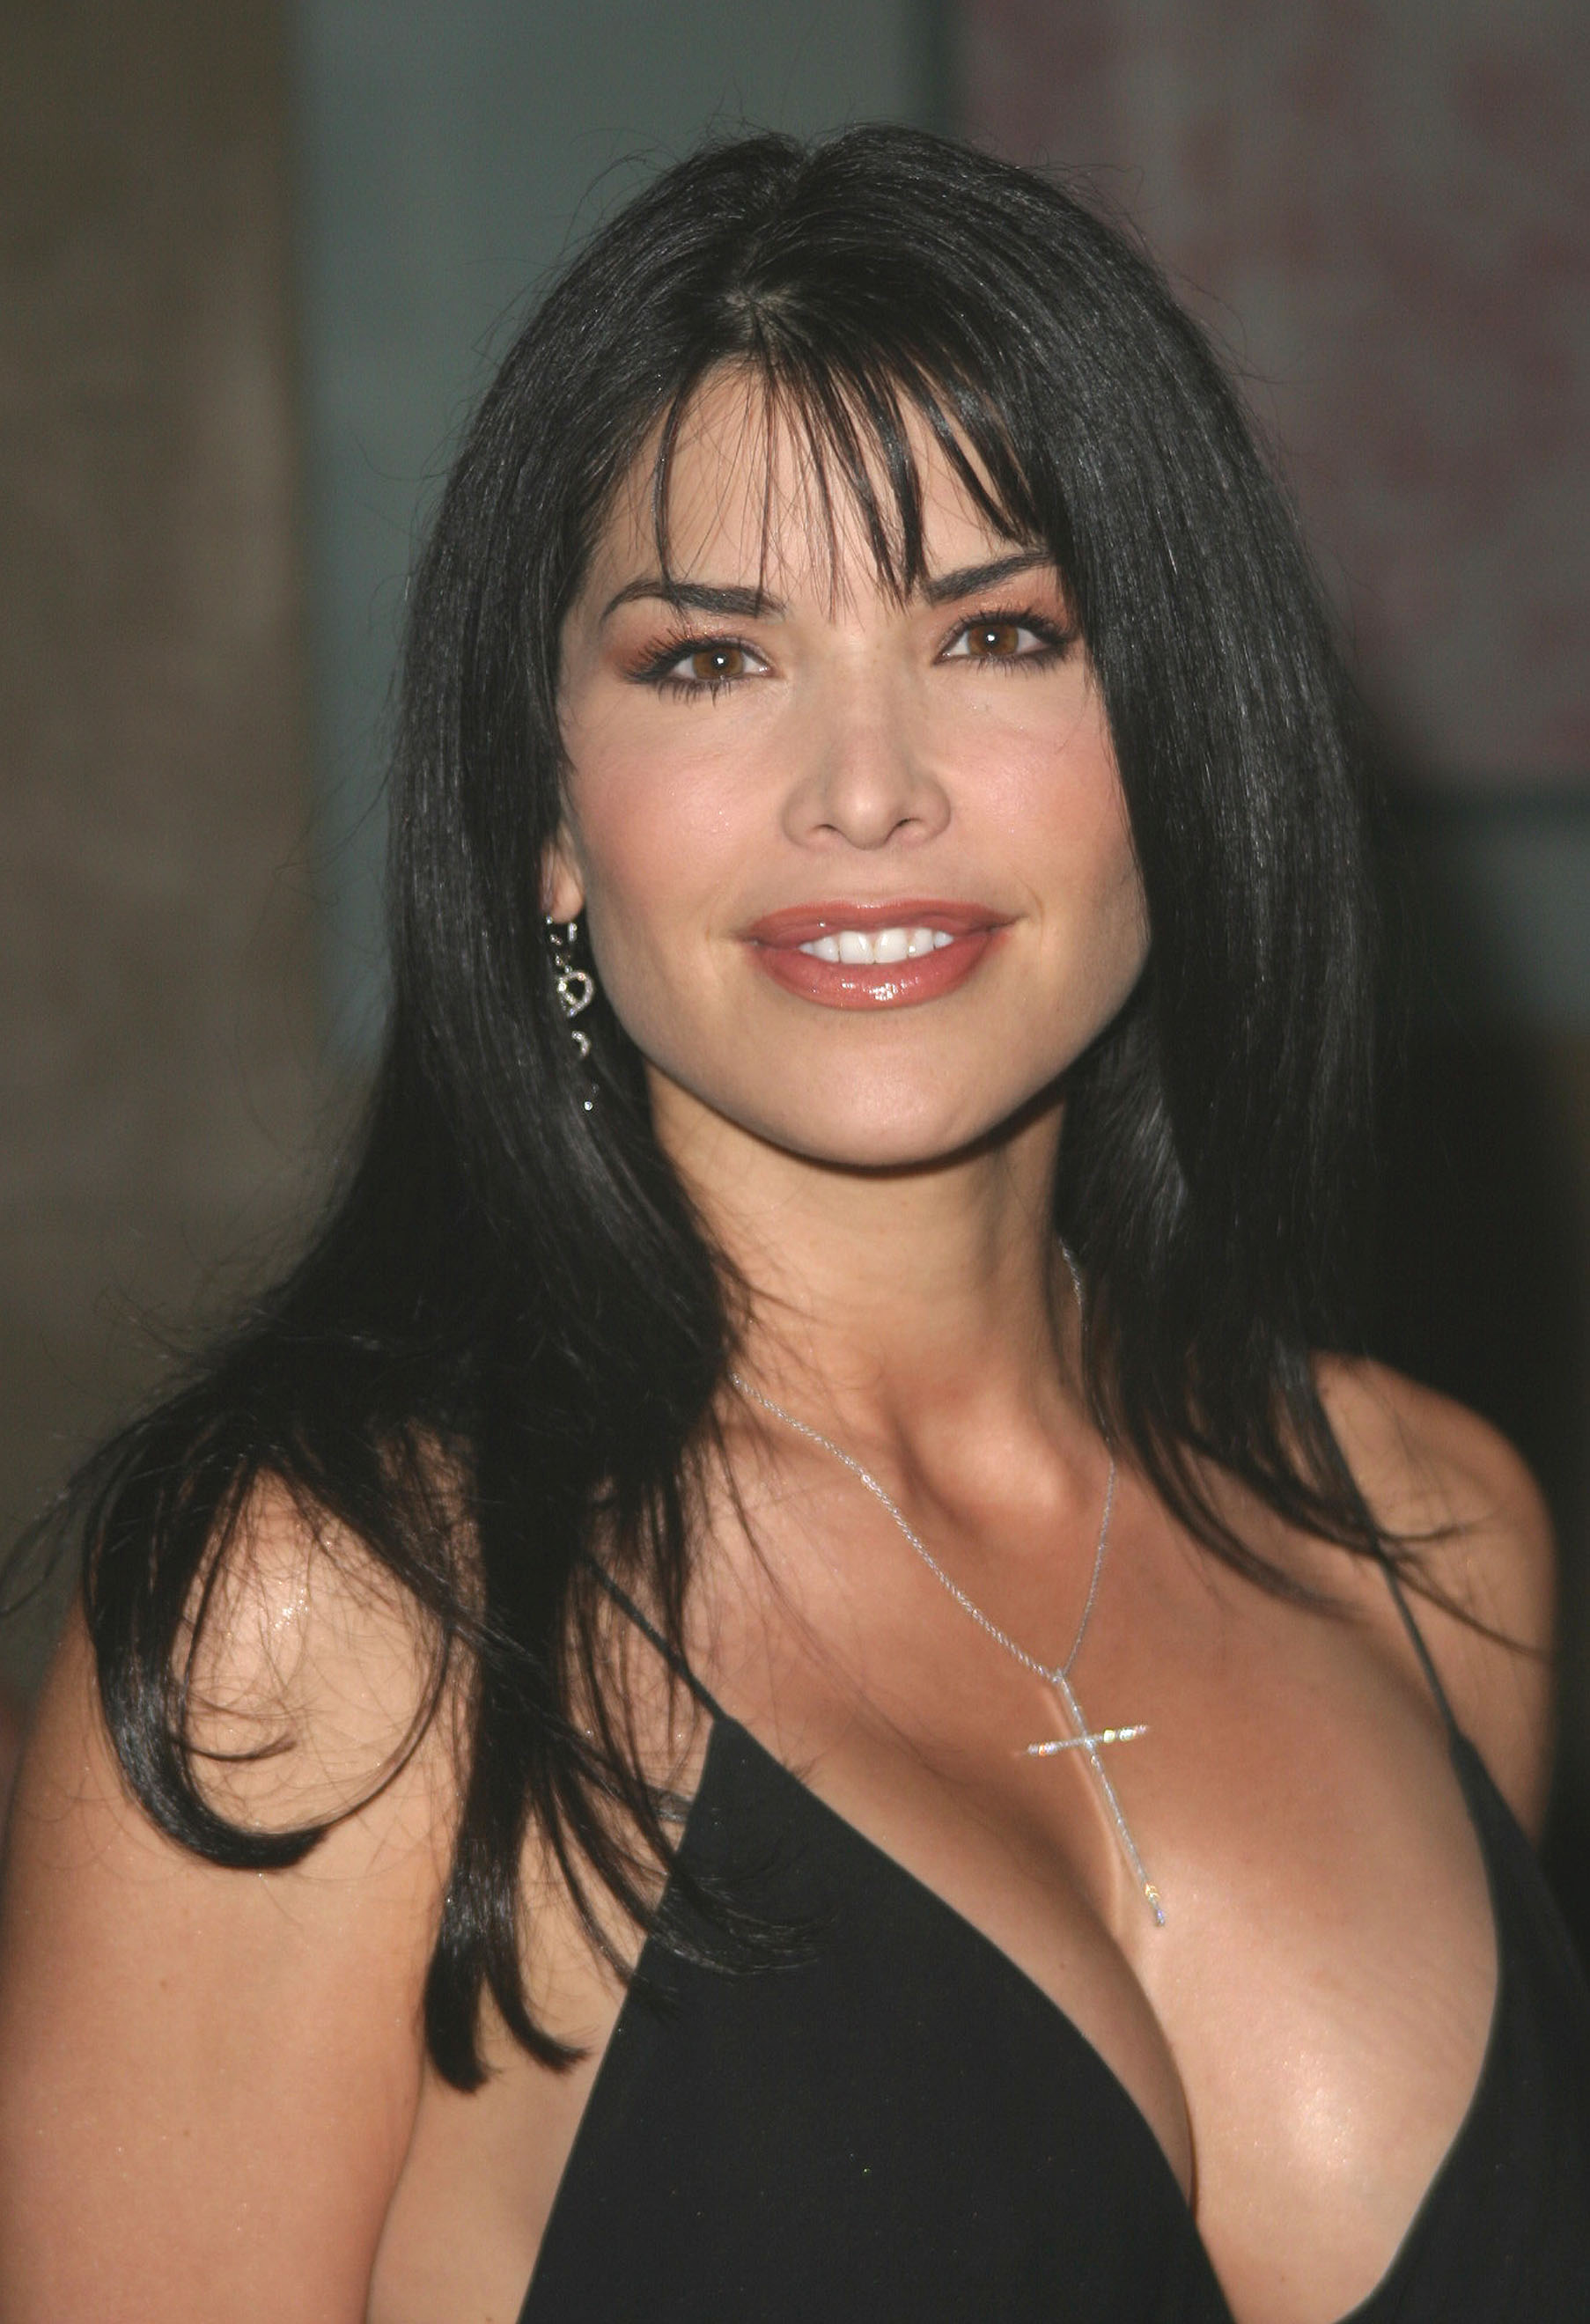 Watch Lauren Sanchez Nude Pic porn videos for free here on Pornhubcom Discover the growing collection of high quality Most Relevant XXX movies and clips No other